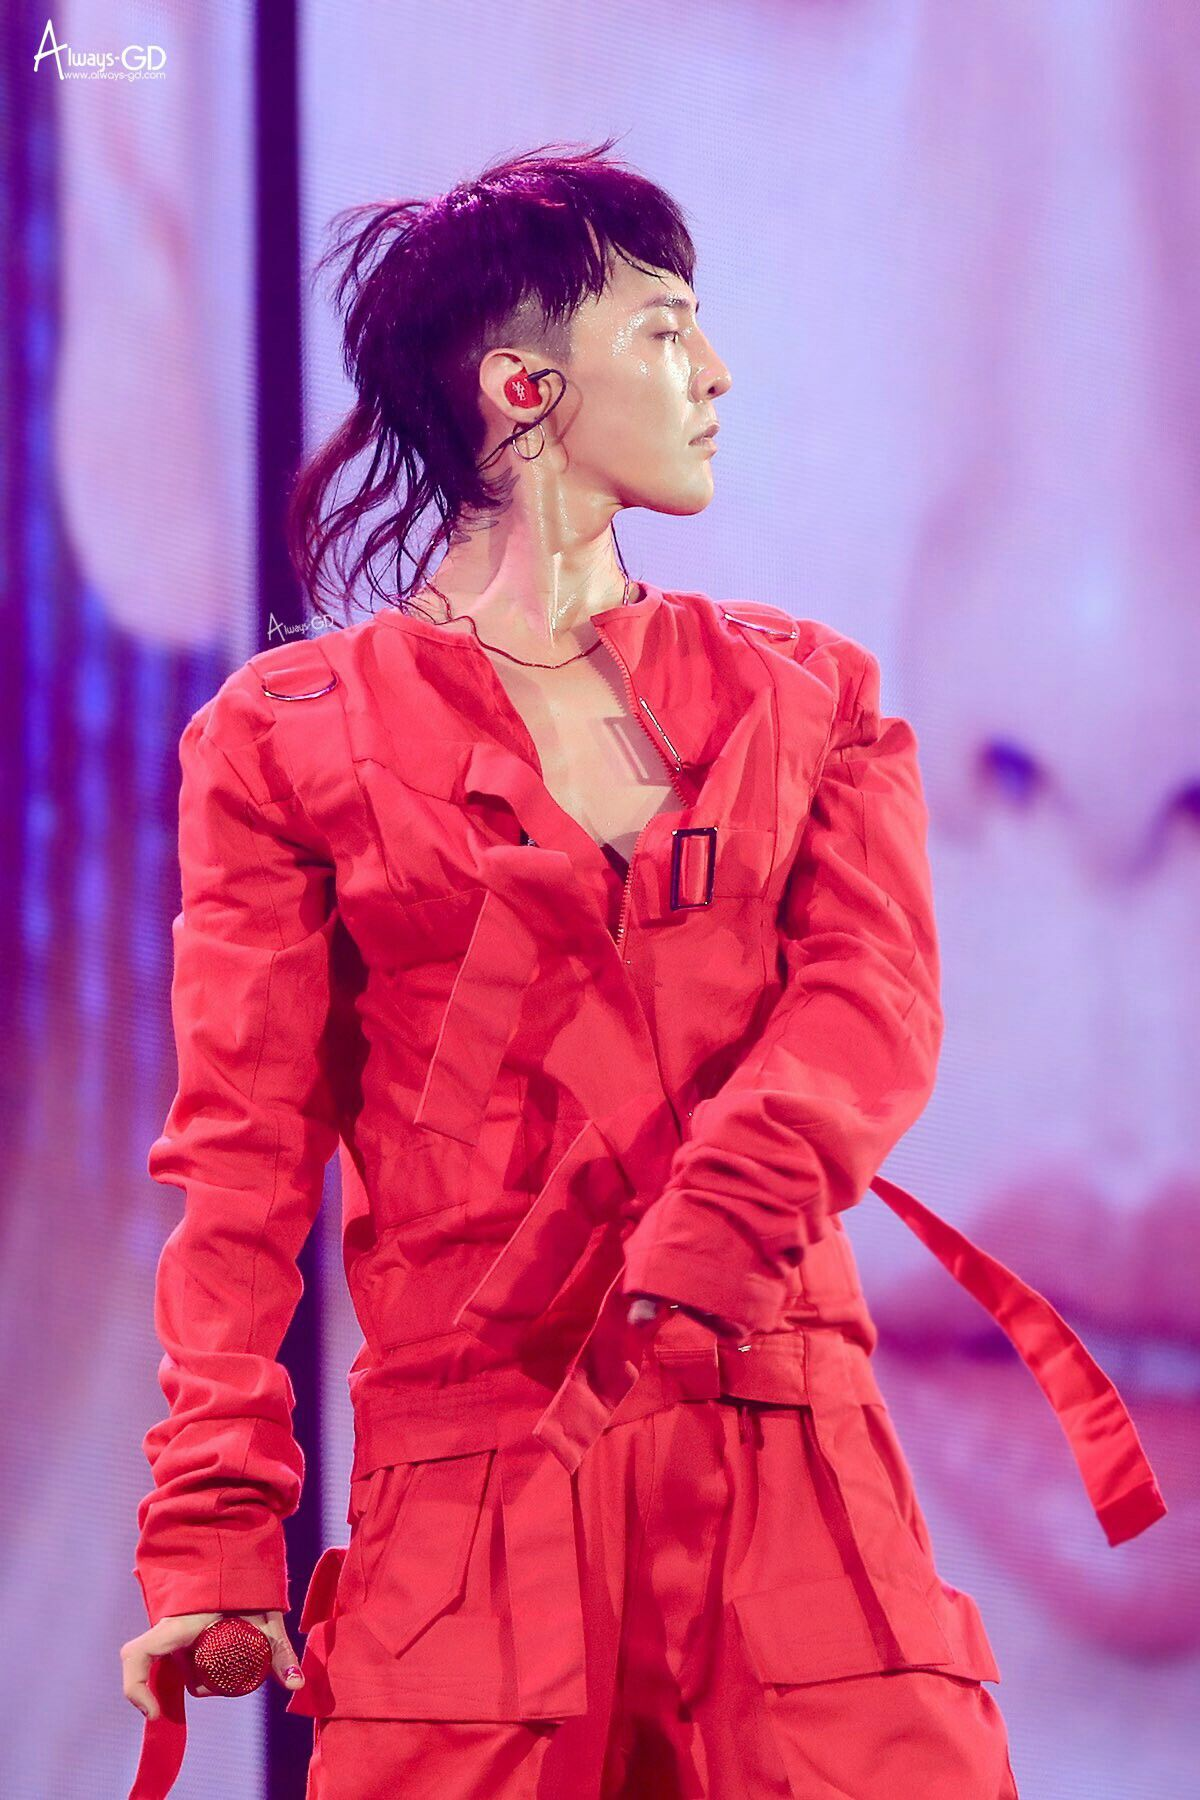 G Dragon Spotted With New Changes To His Hairstyle Koreaboo